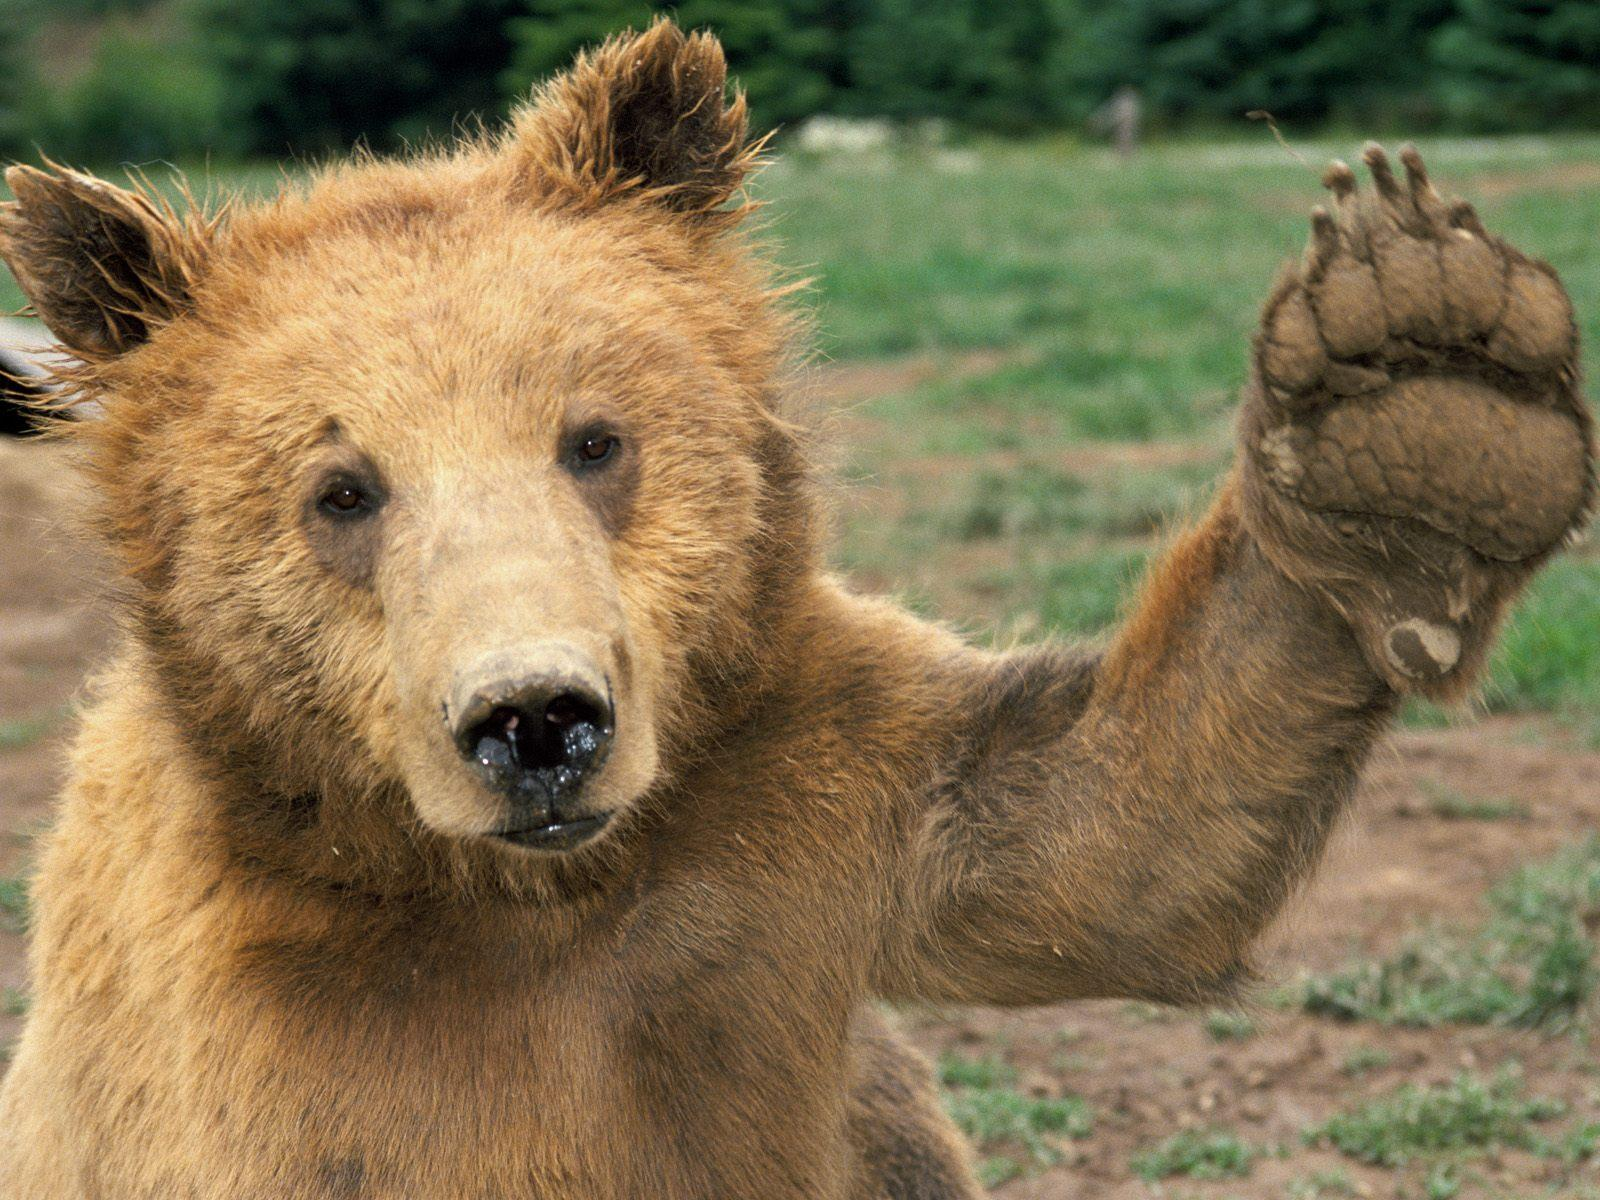 Cute Animals That Can Kill You - Slapped Ham Cute Grizzly Bear Waving